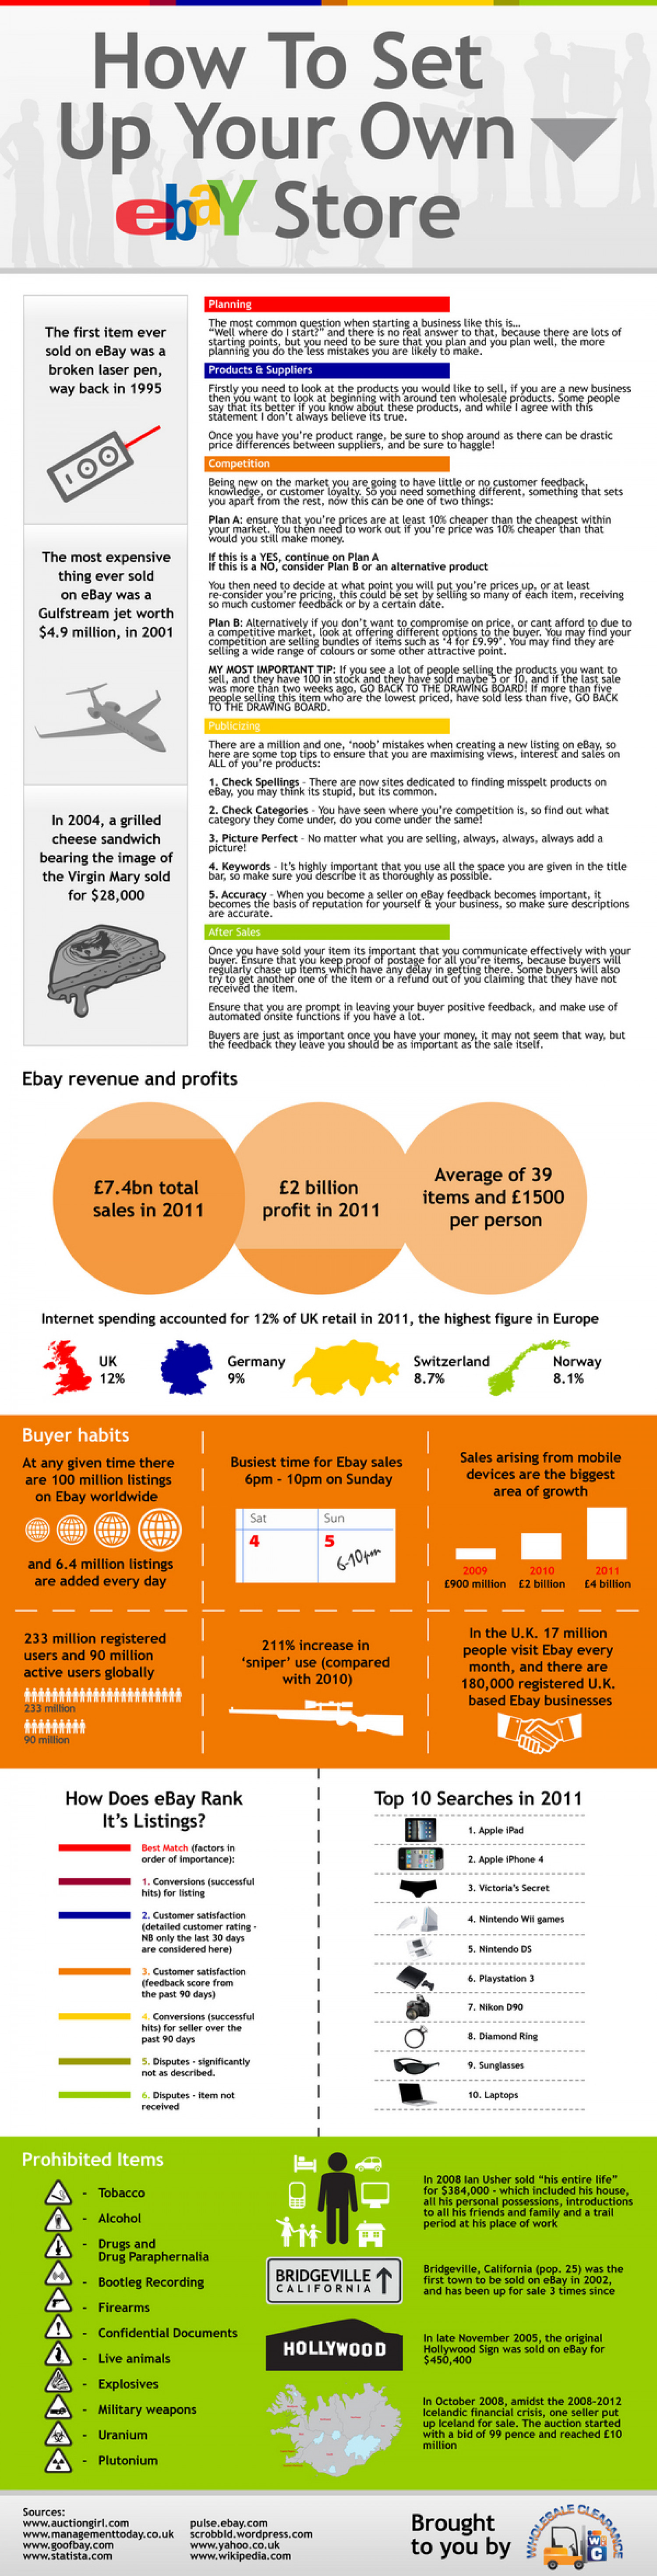 How To Set Up Your Own Ebay Store Infographic